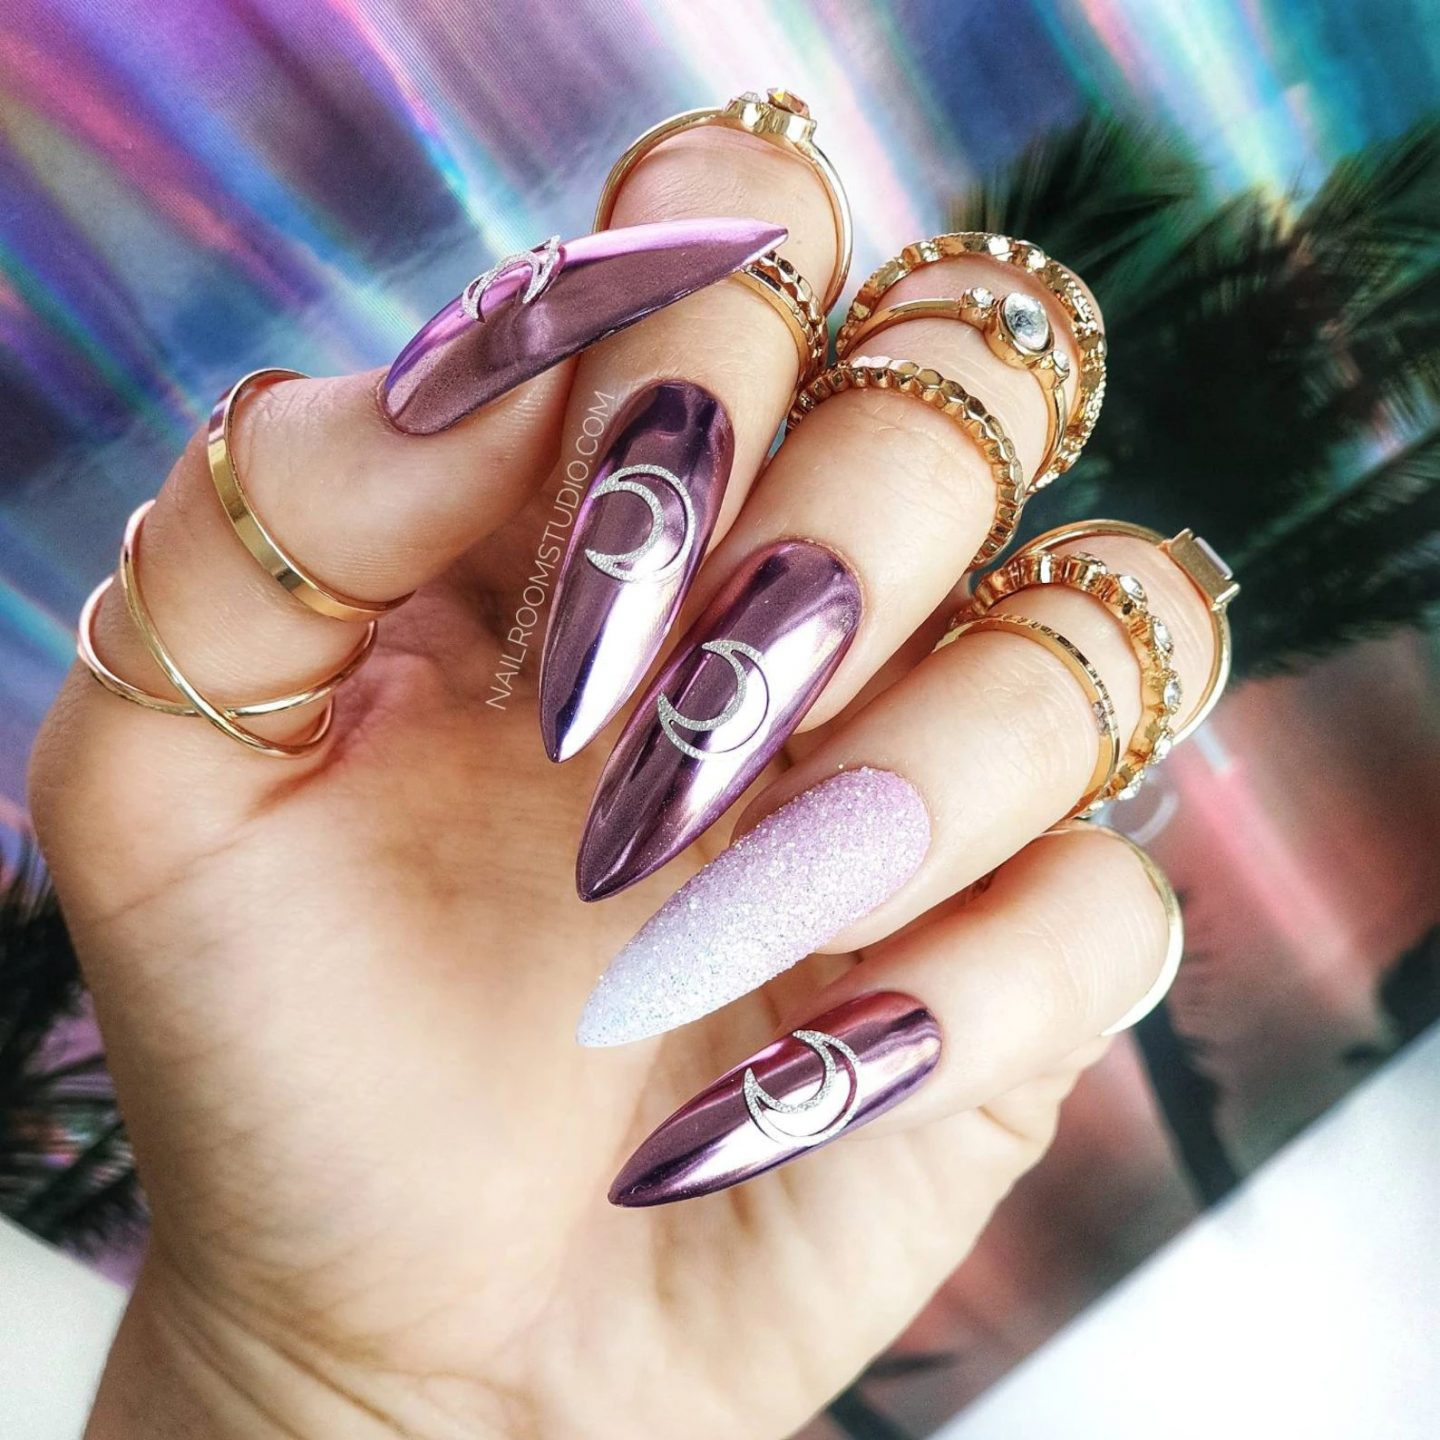 Pink metallic stiletto nails with glitters